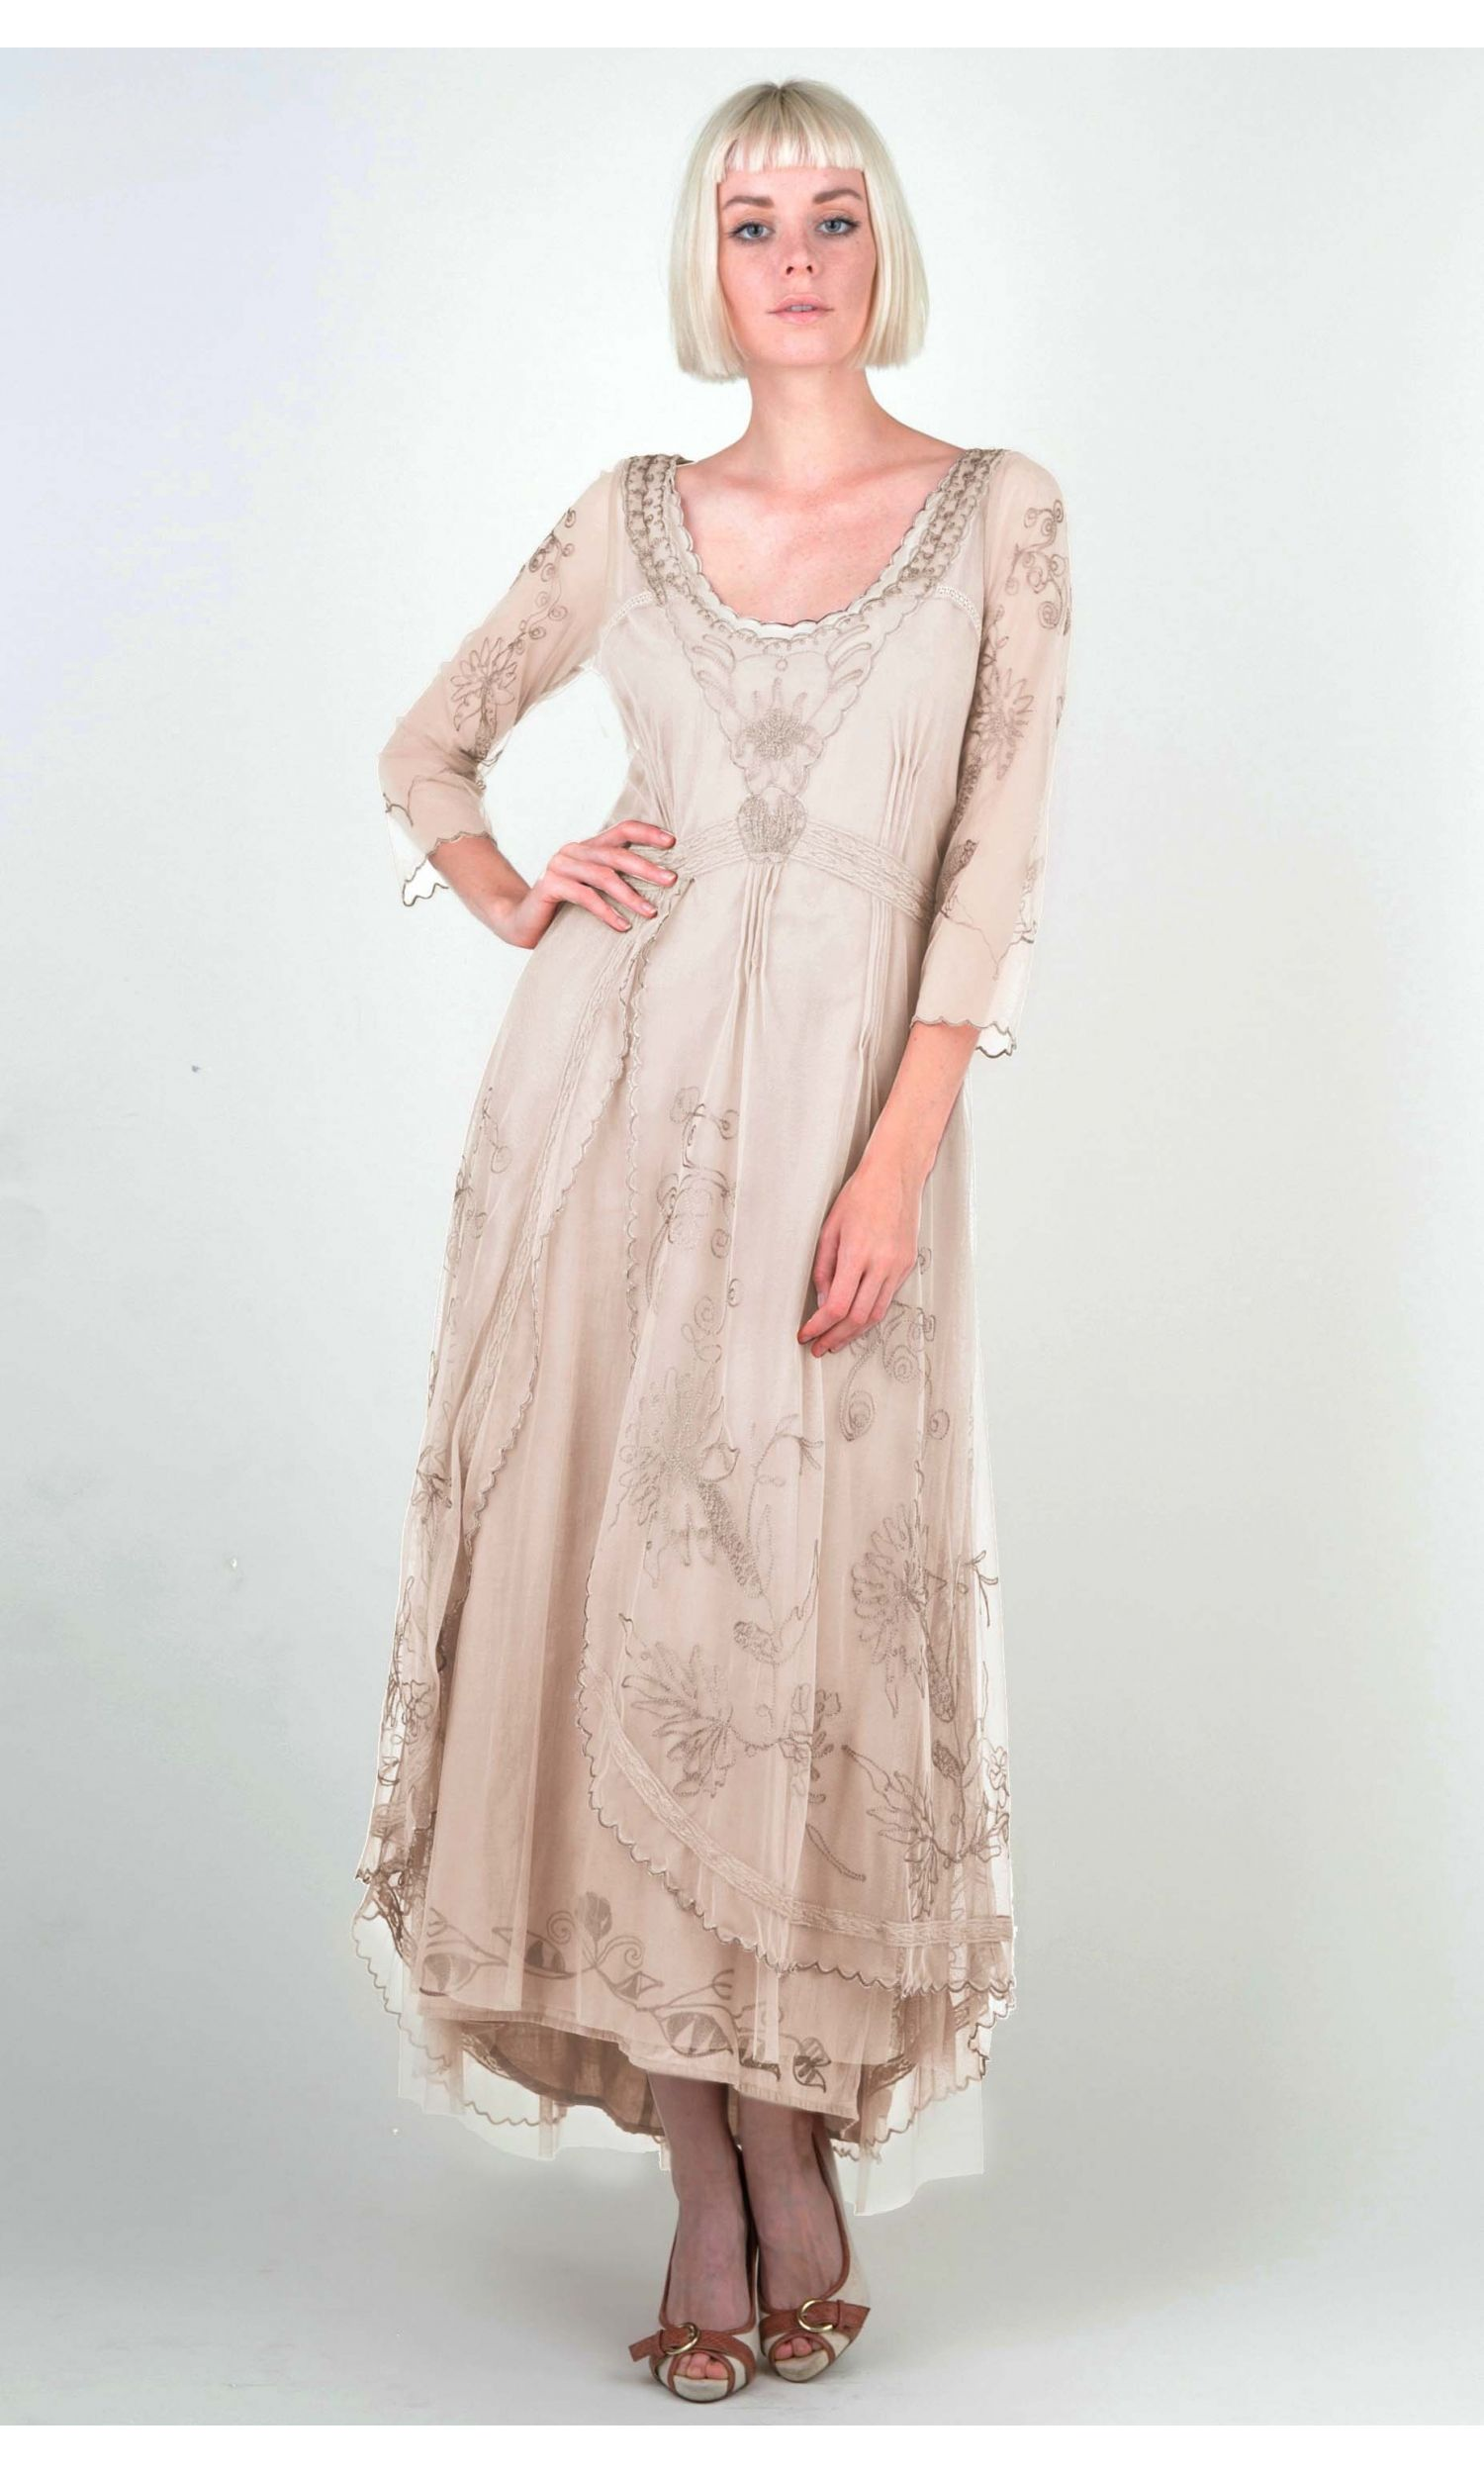 Downton Abbey Tea Party Gown in Pearl by Nataya | Pinterest